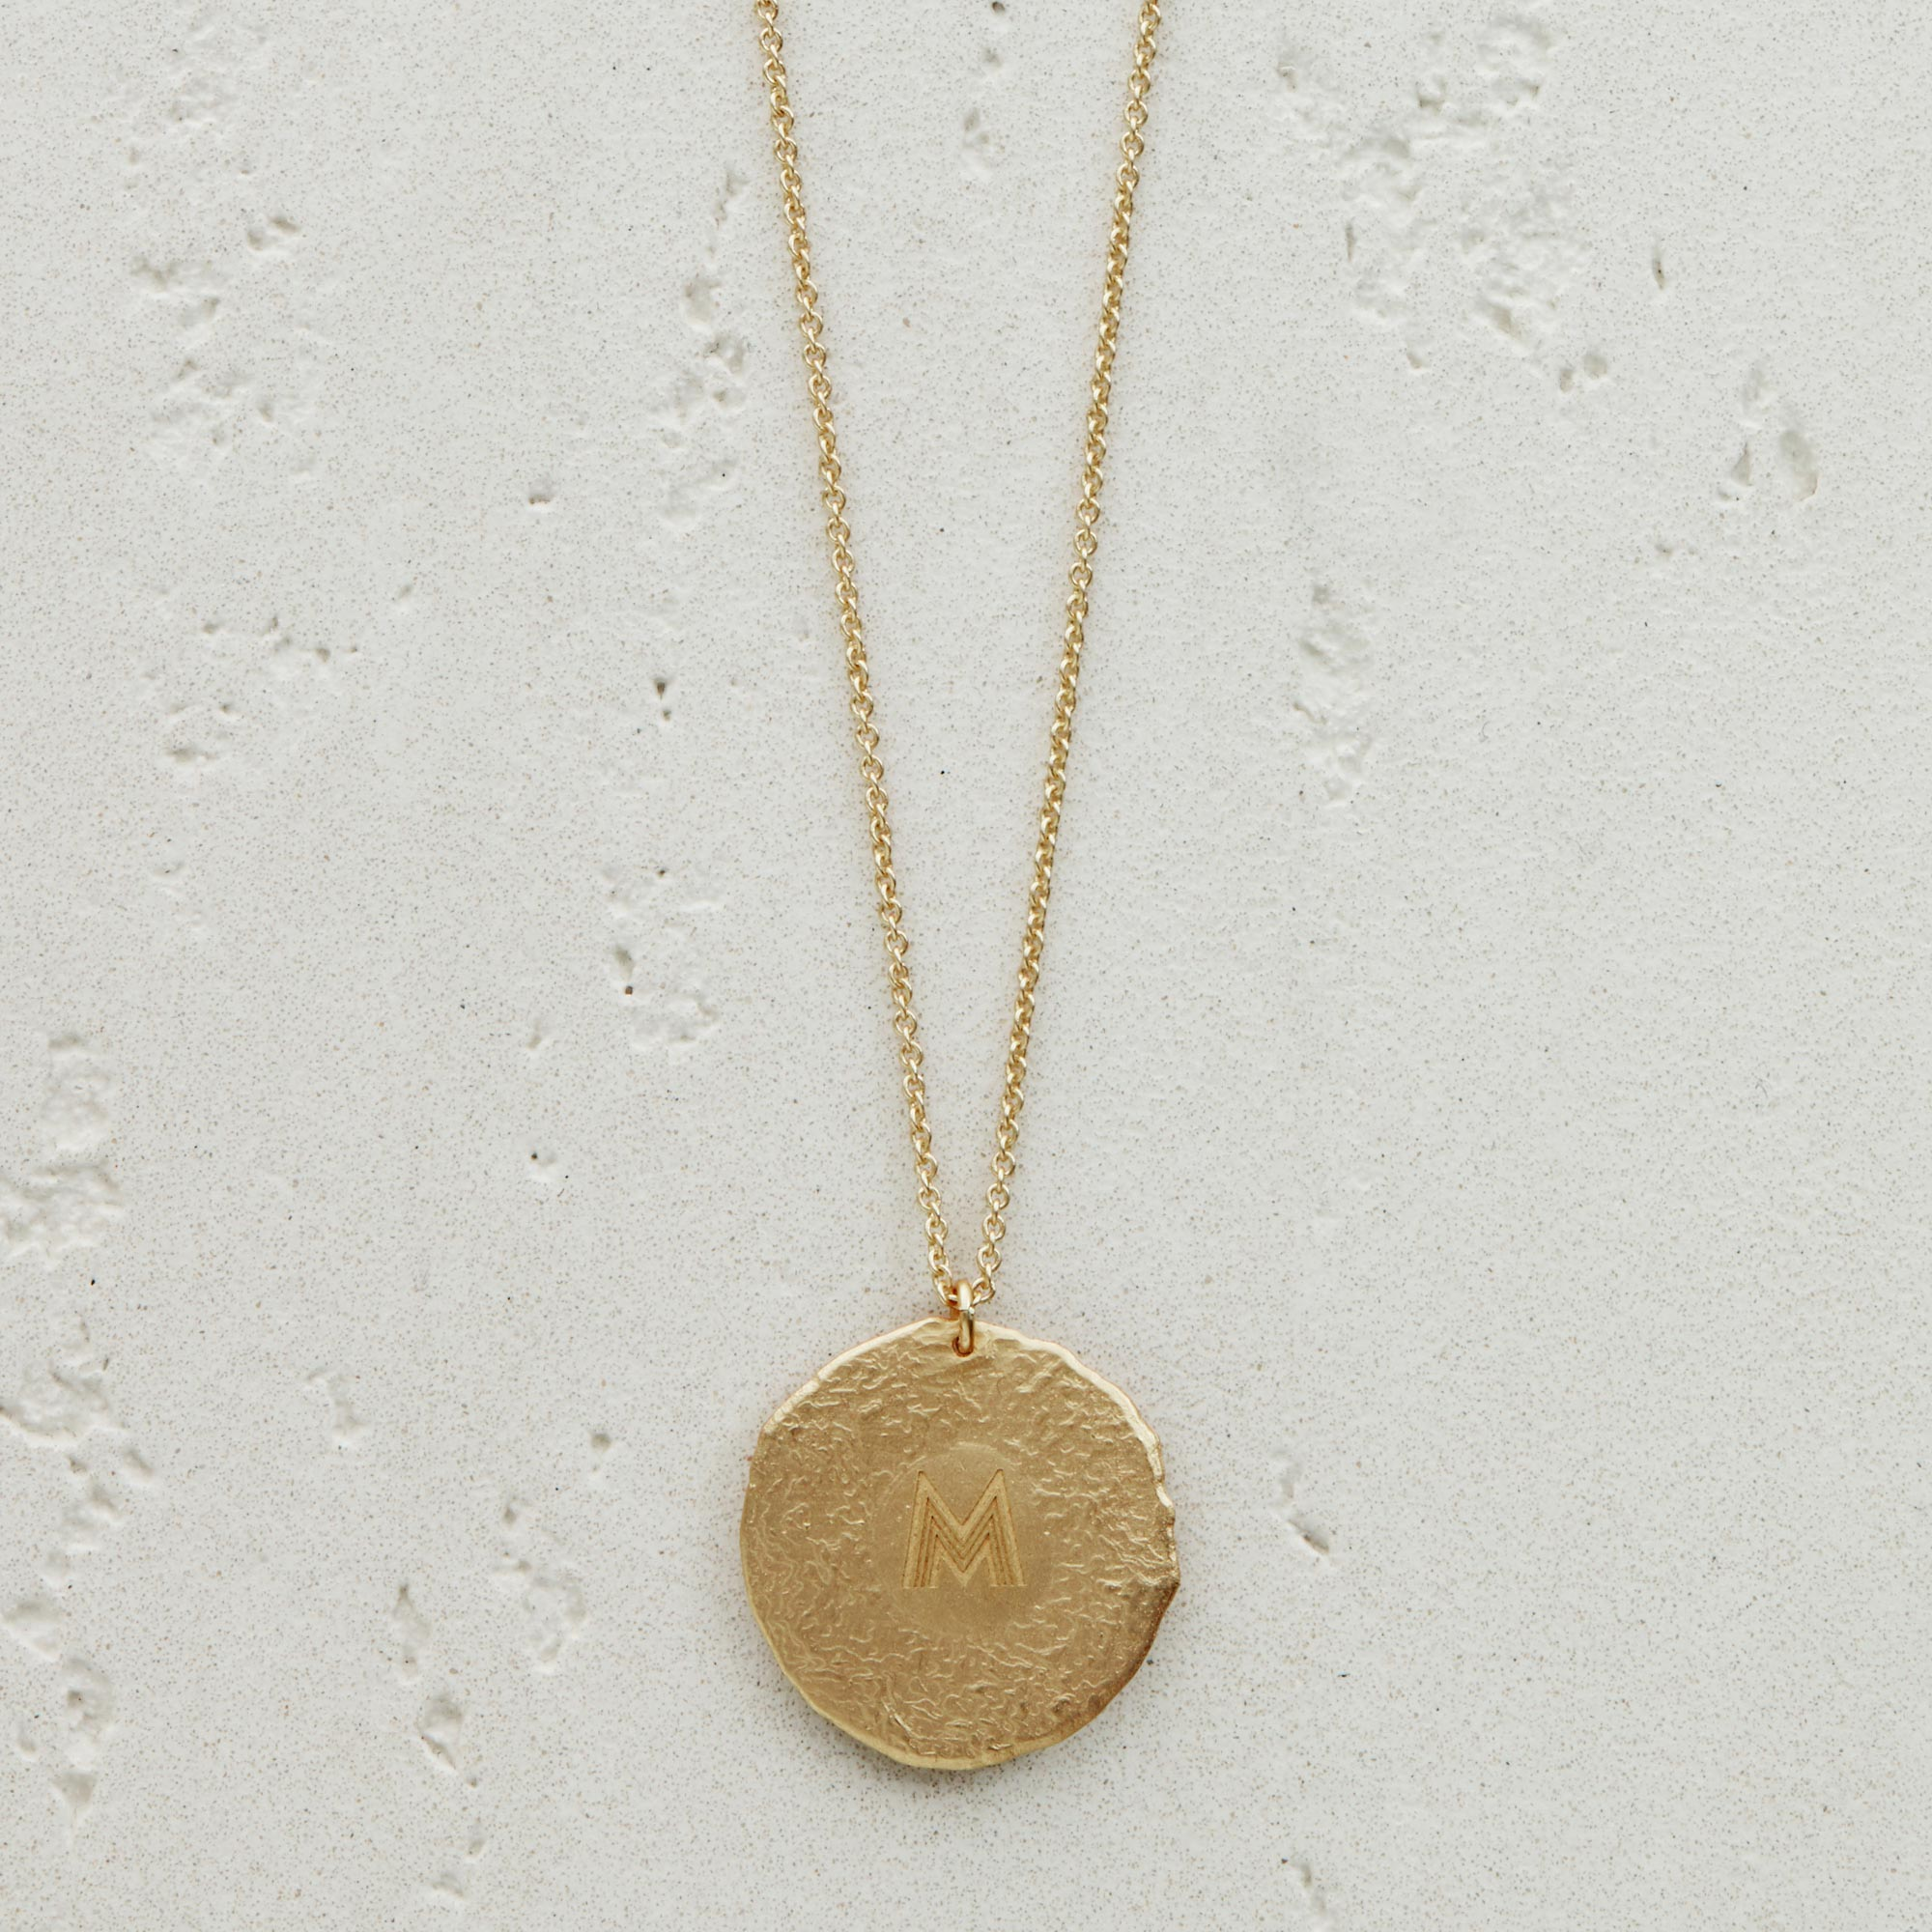 Cancer Astro necklace - Gold